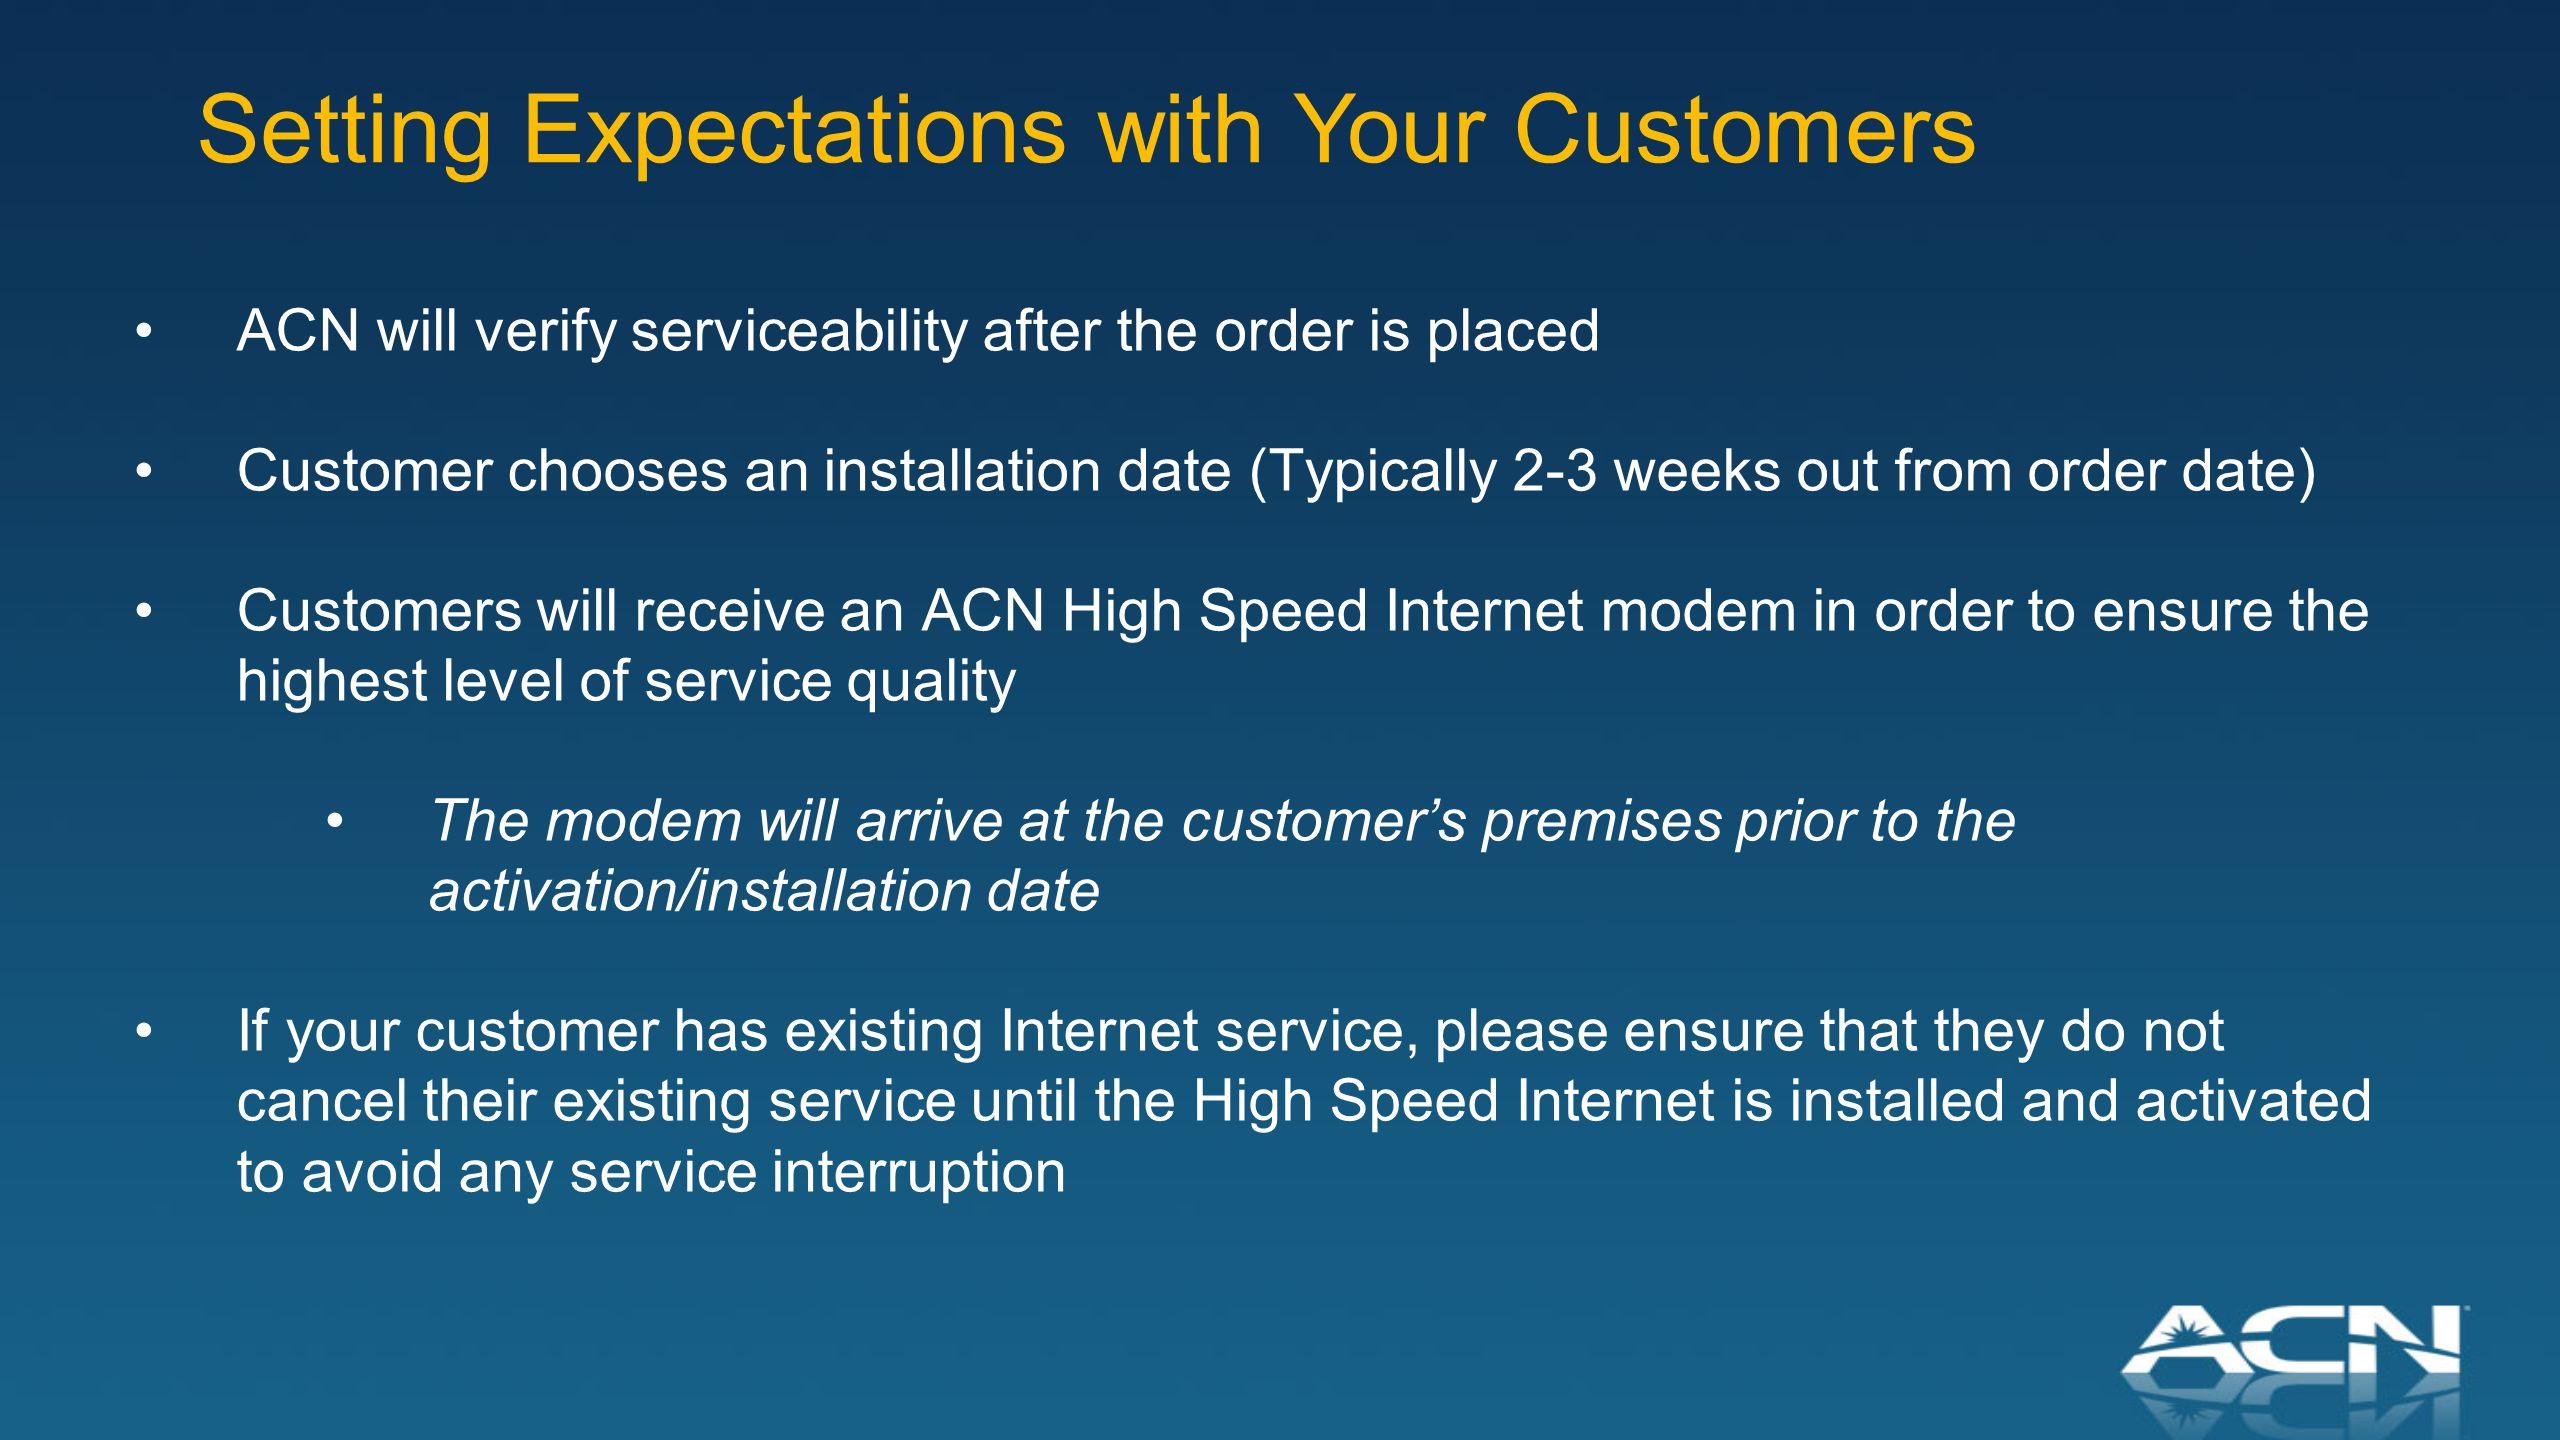 ACN will verify serviceability after the order is placed Customer chooses an installation date (Typically 2-3 weeks out from order date) Customers will receive an ACN High Speed Internet modem in order to ensure the highest level of service quality The modem will arrive at the customer's premises prior to the activation/installation date If your customer has existing Internet service, please ensure that they do not cancel their existing service until the High Speed Internet is installed and activated to avoid any service interruption Setting Expectations with Your Customers